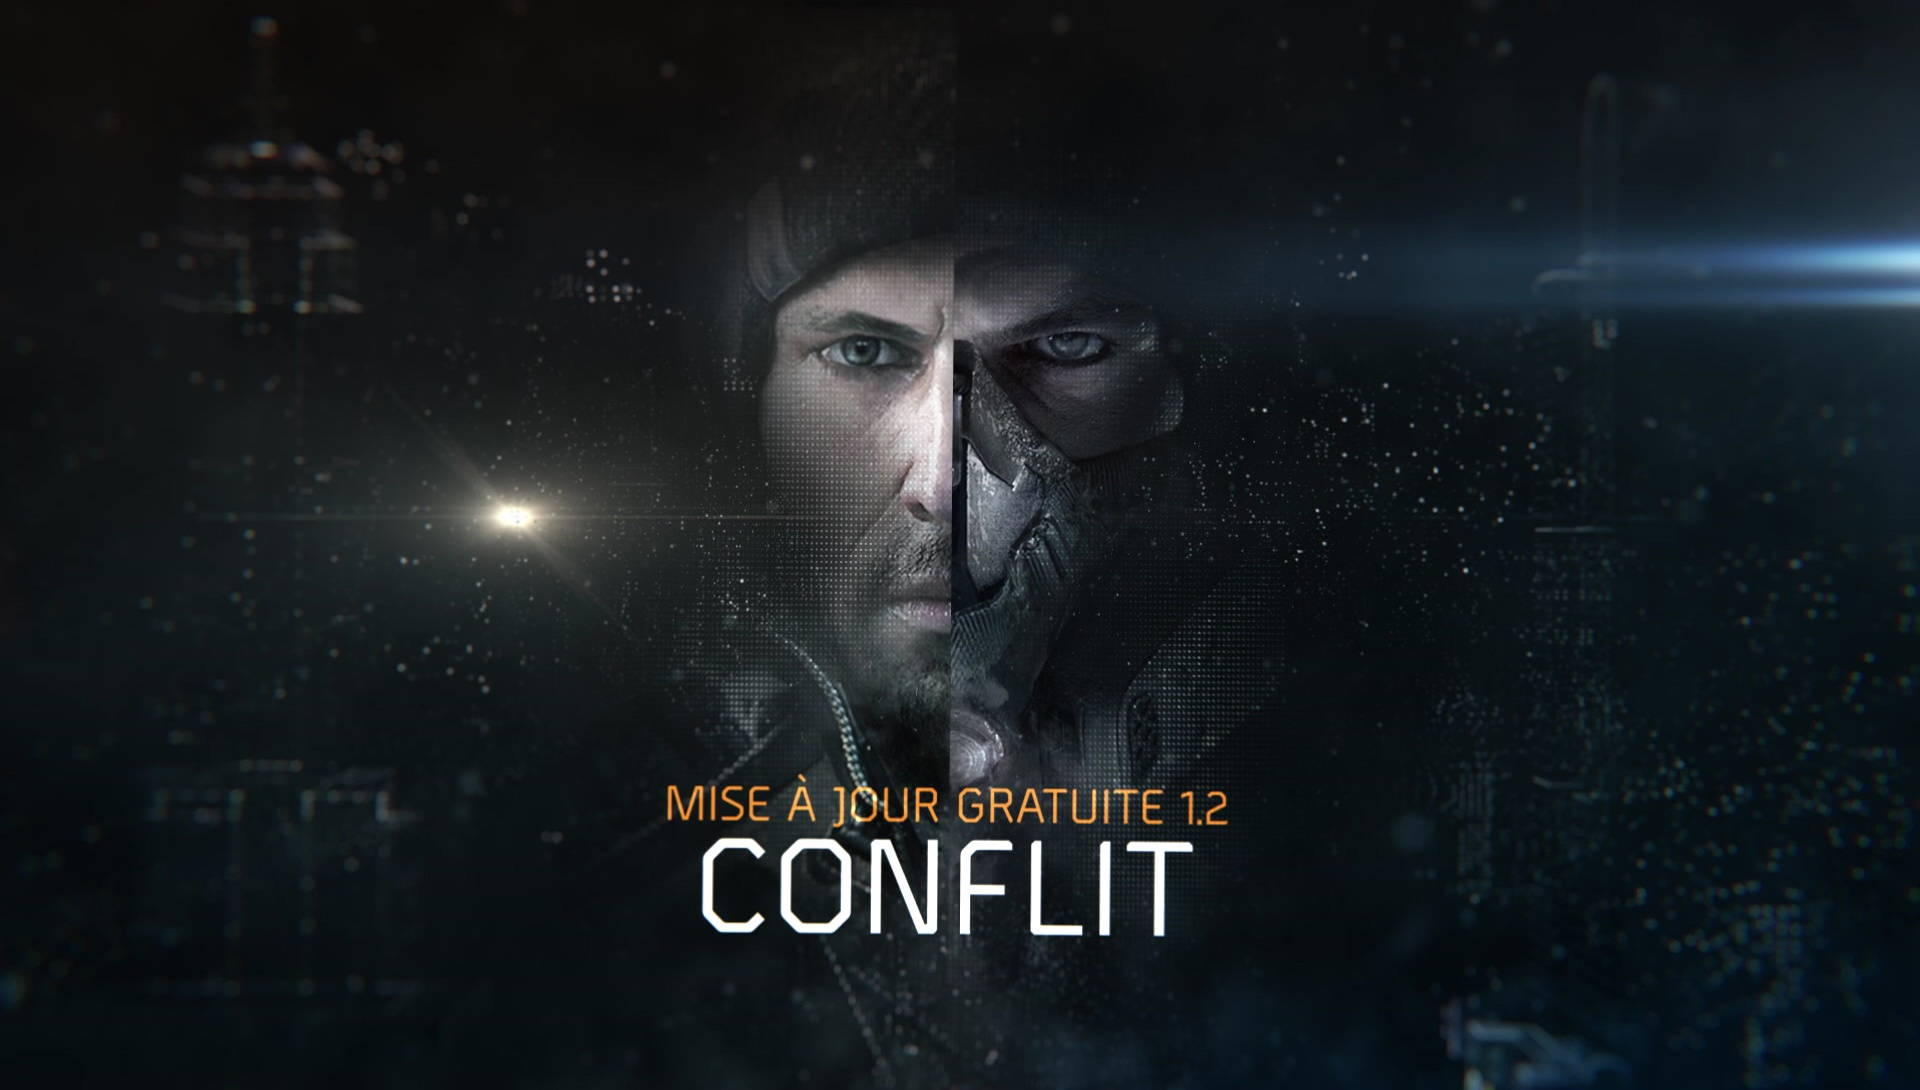 tomclancysthedivision_conflictscreens2_0002